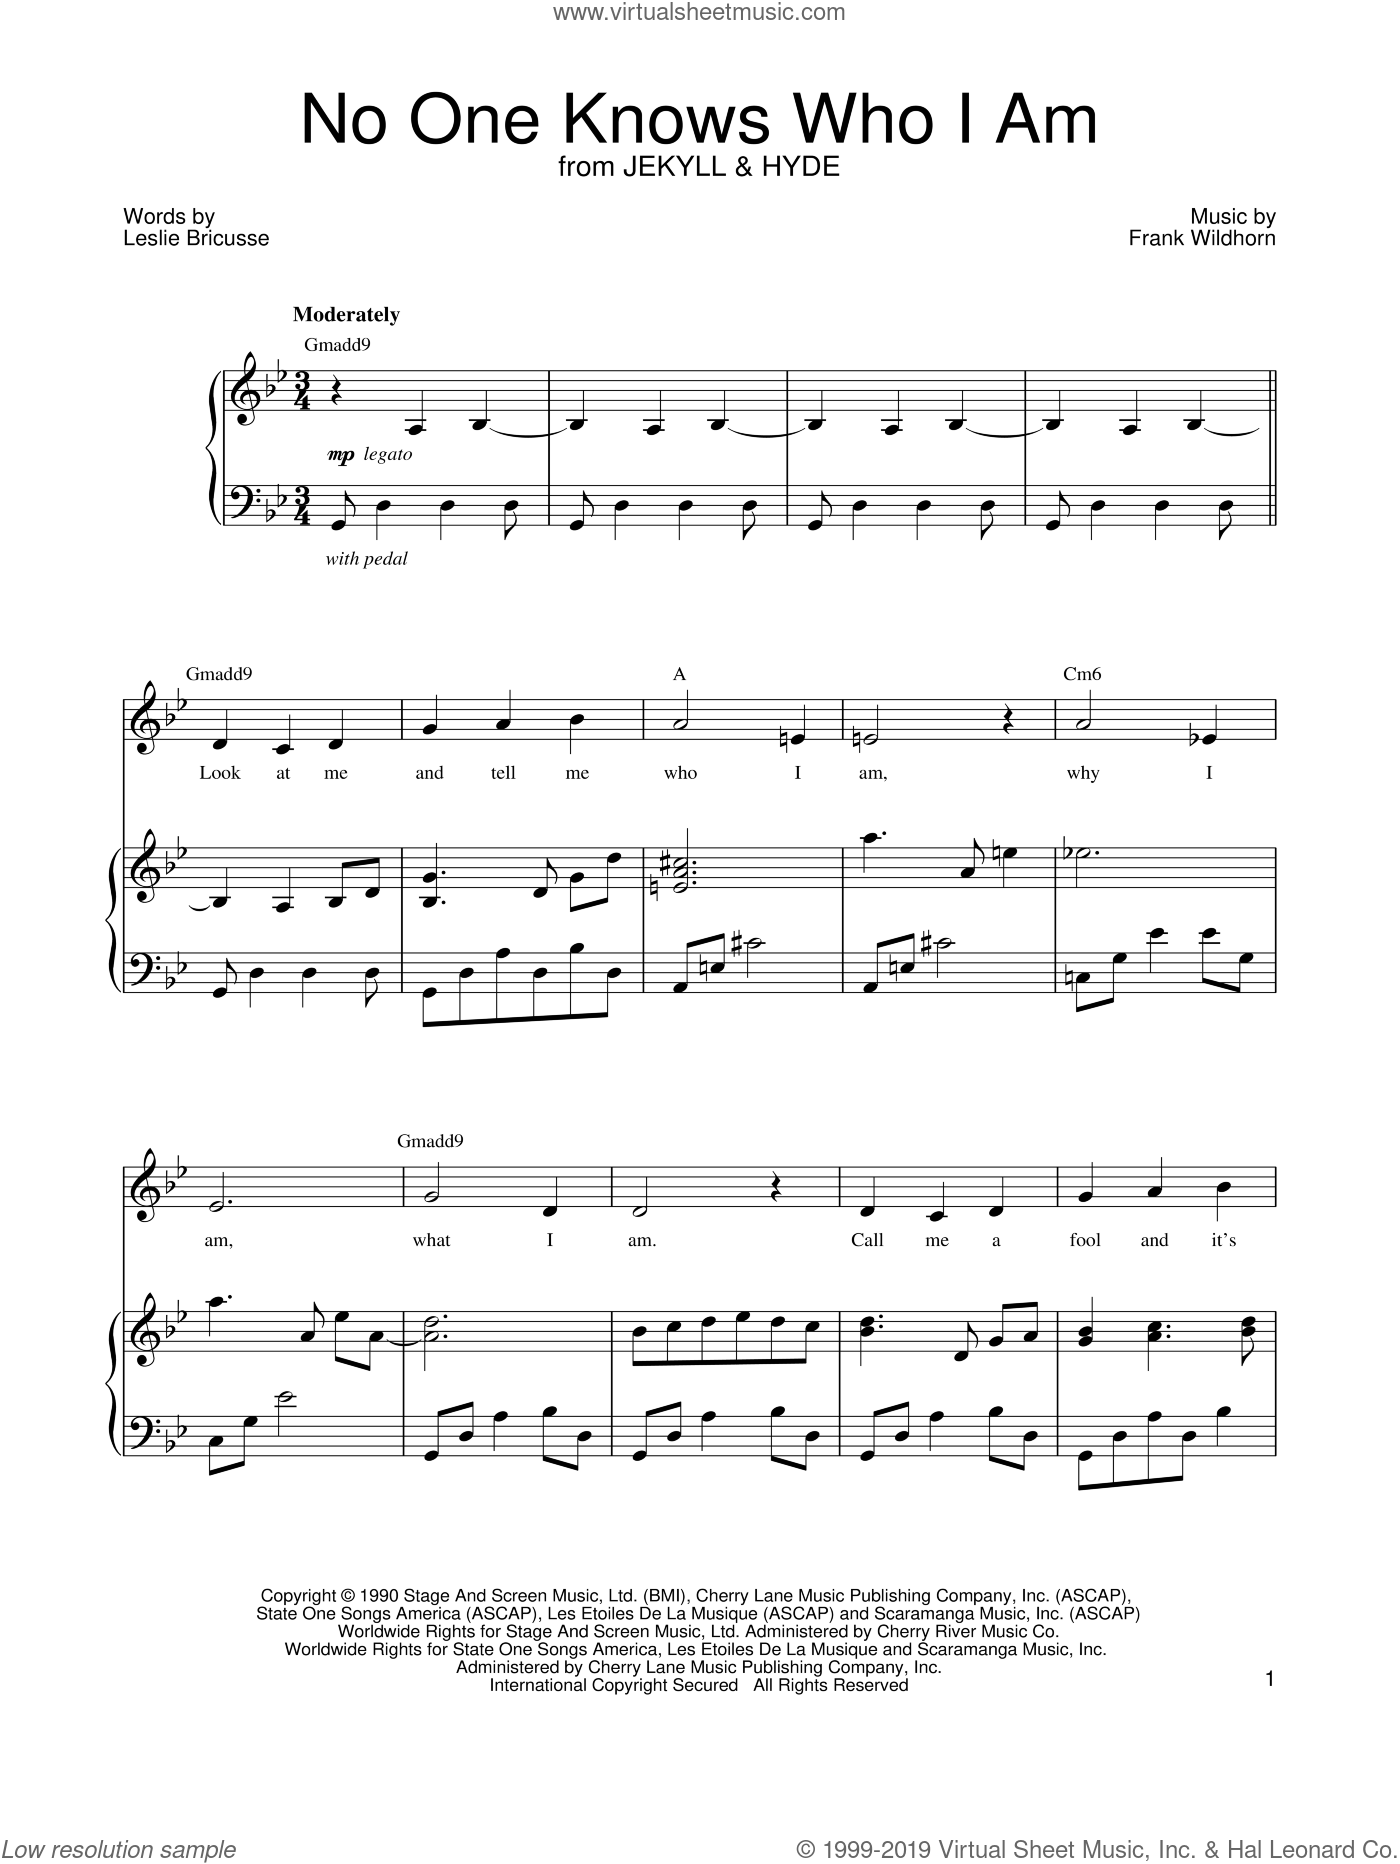 No One Knows Who I Am sheet music for voice and piano by Leslie Bricusse, Jekyll & Hyde (Musical) and Frank Wildhorn, intermediate skill level